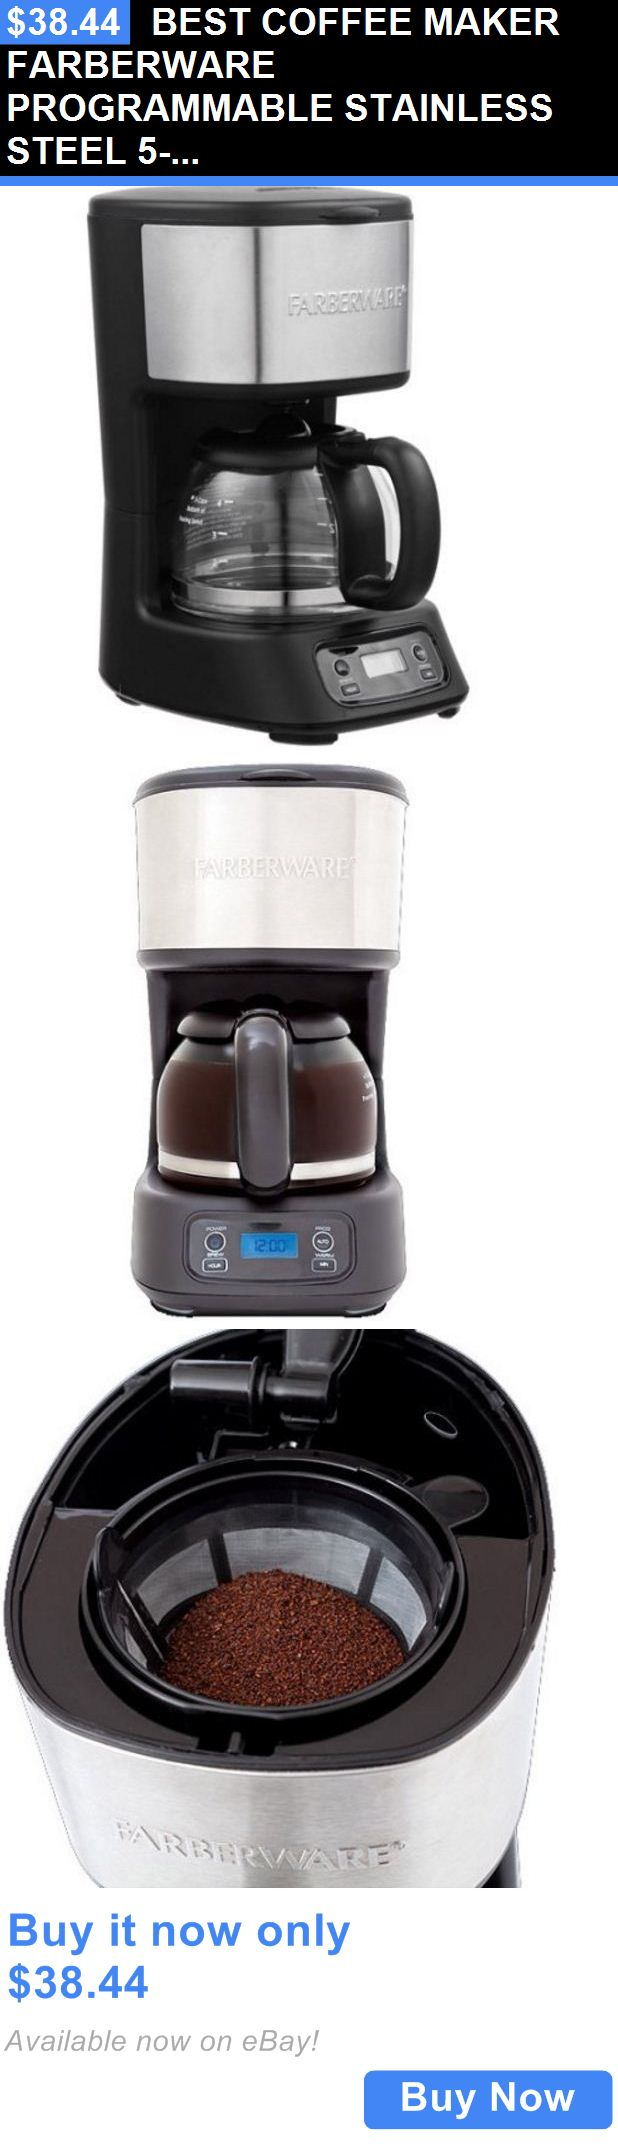 Crofton Coffee Maker With Grinder Instructions : 1000+ ideas about Farberware Coffee Maker on Pinterest Best home espresso machine, Best coffee ...